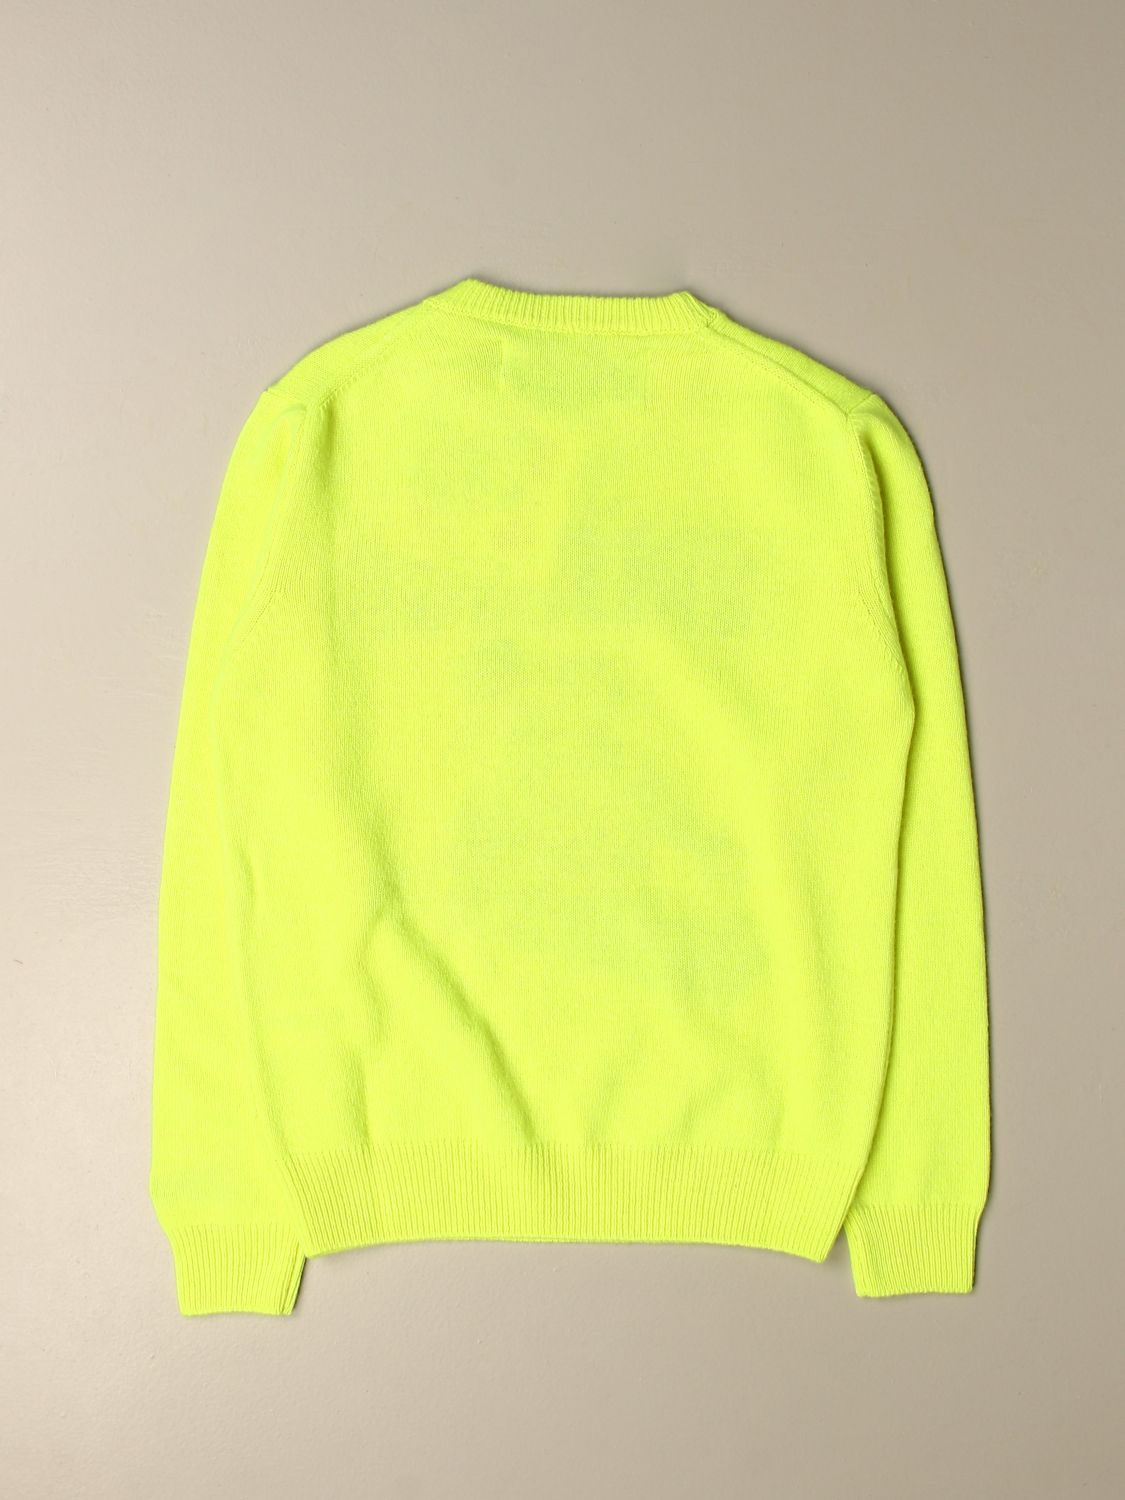 Pull Mc2 Saint Barth: Pull enfant Mc2 Saint Barth jaune 2